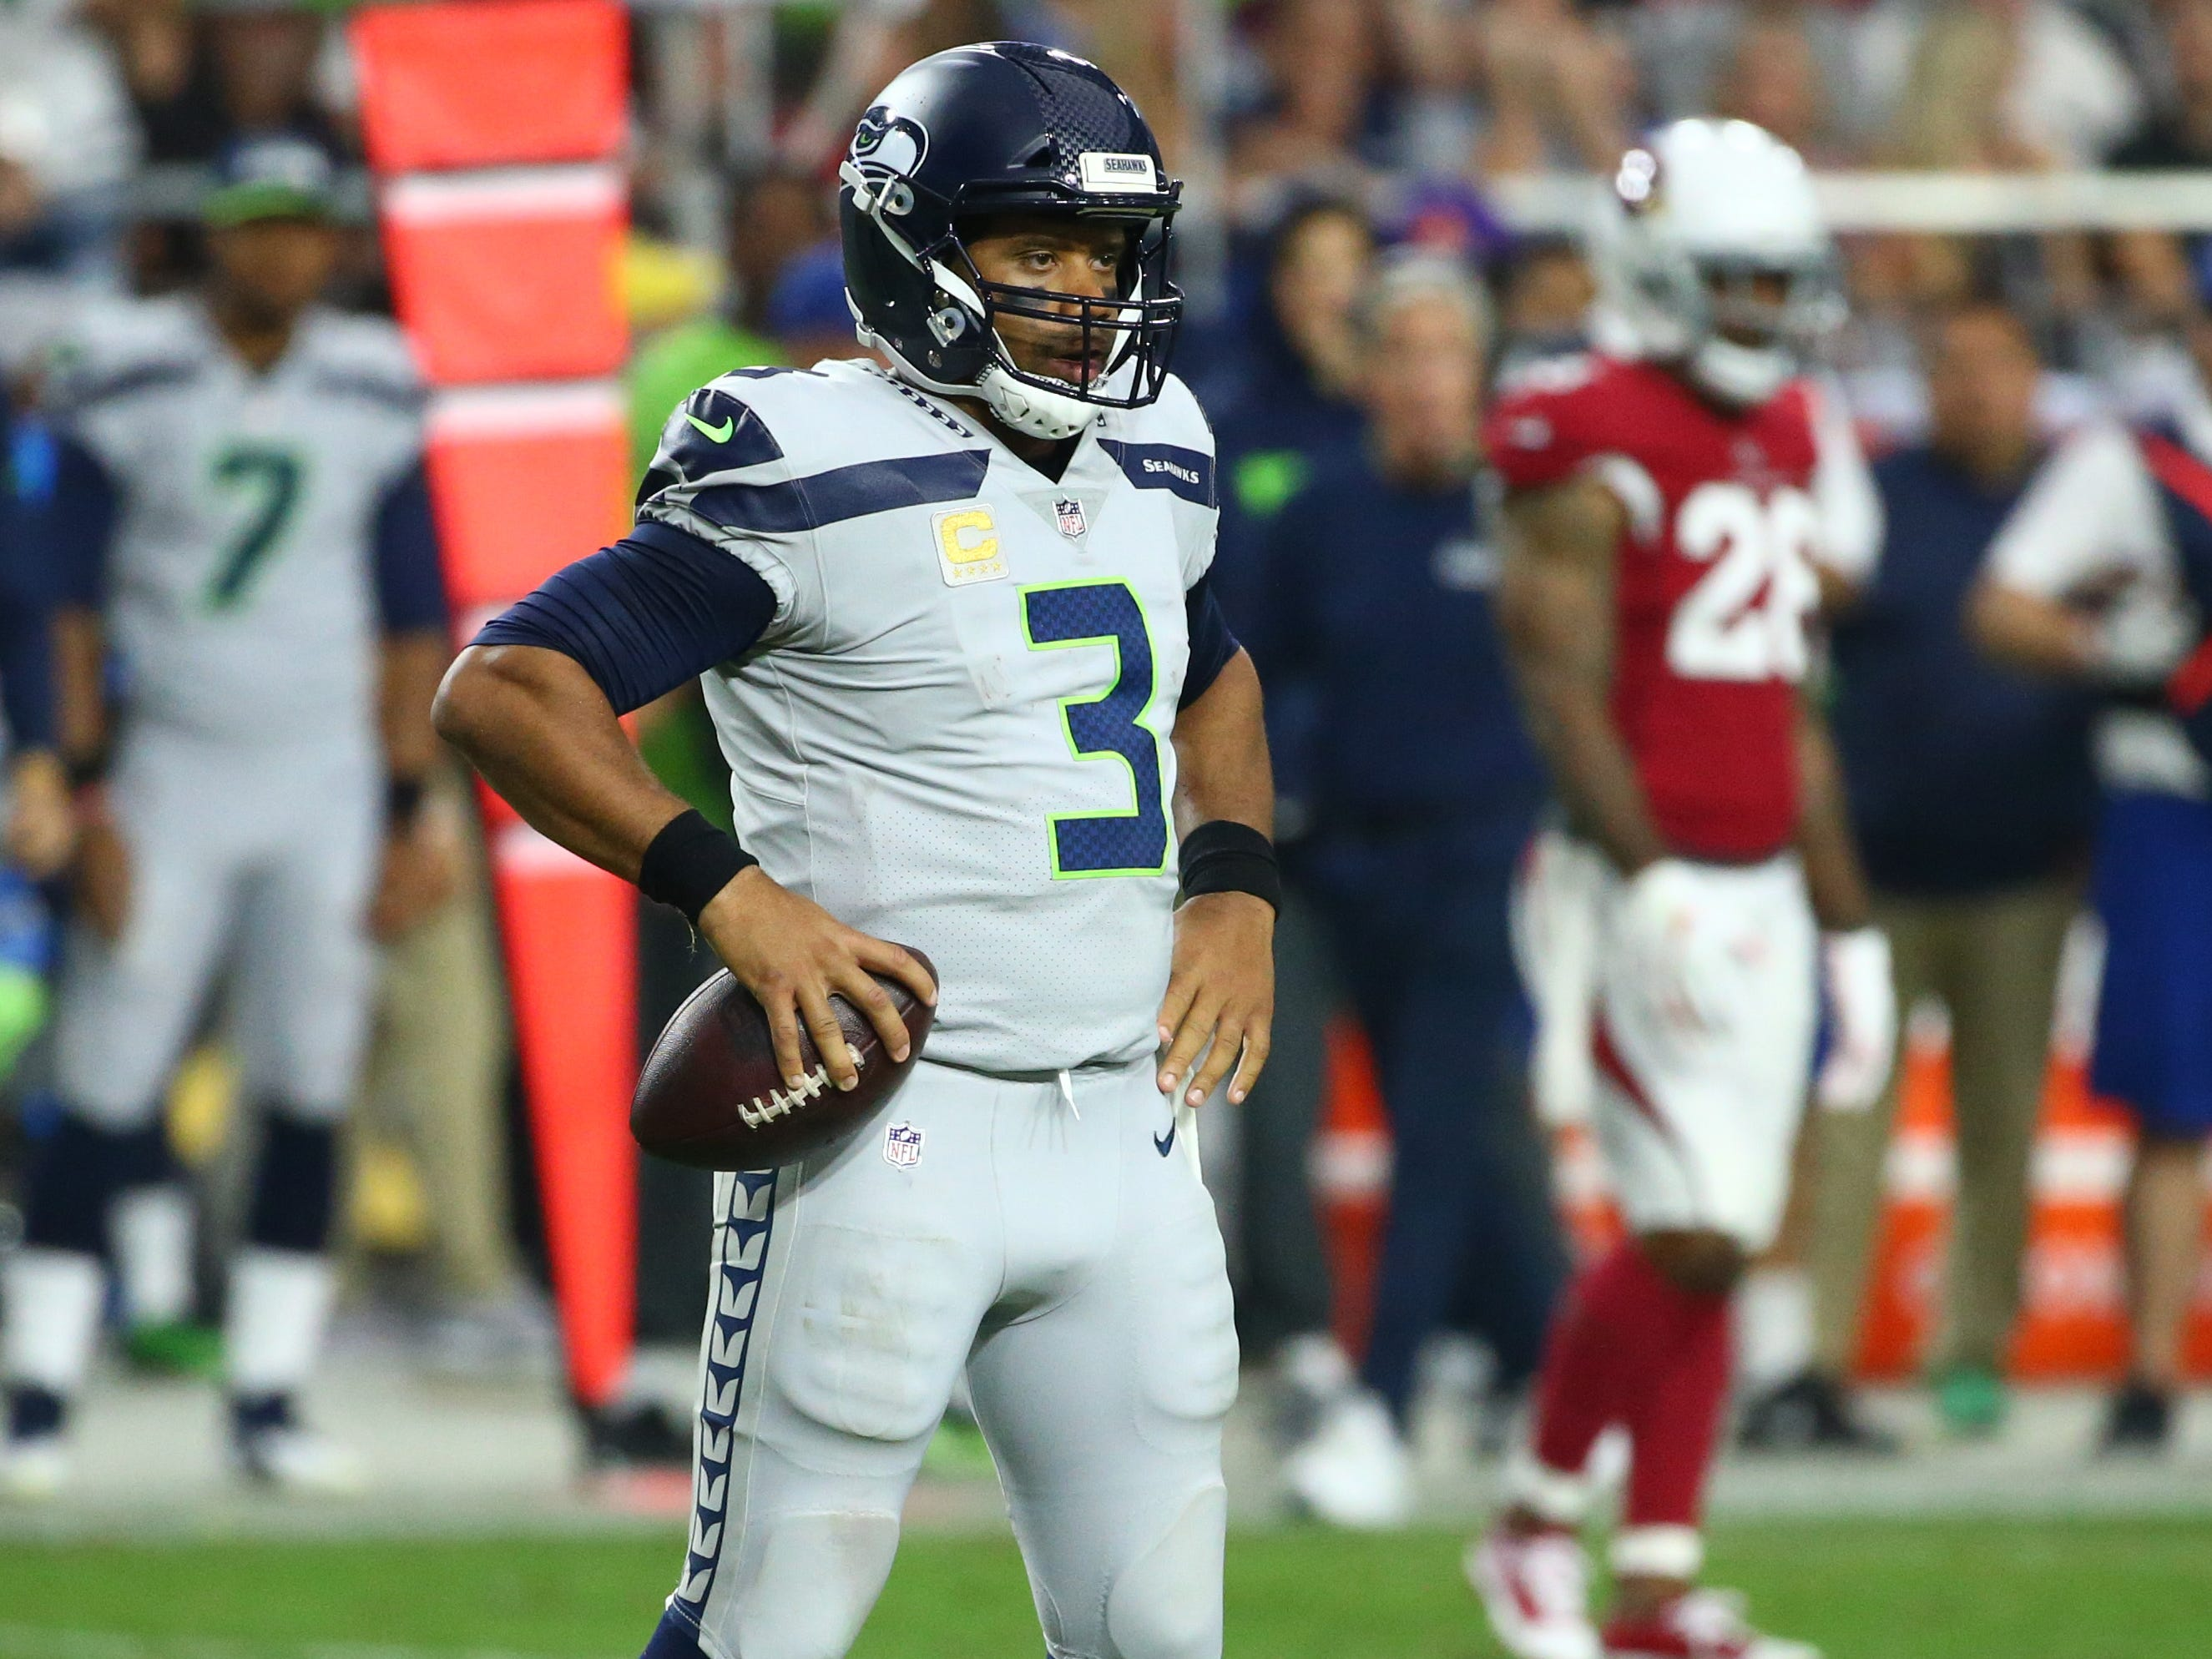 Seattle Seahawks Russell Wilson against the Arizona Cardinals in the second half at State Farm Stadium in Glendale, Ariz.